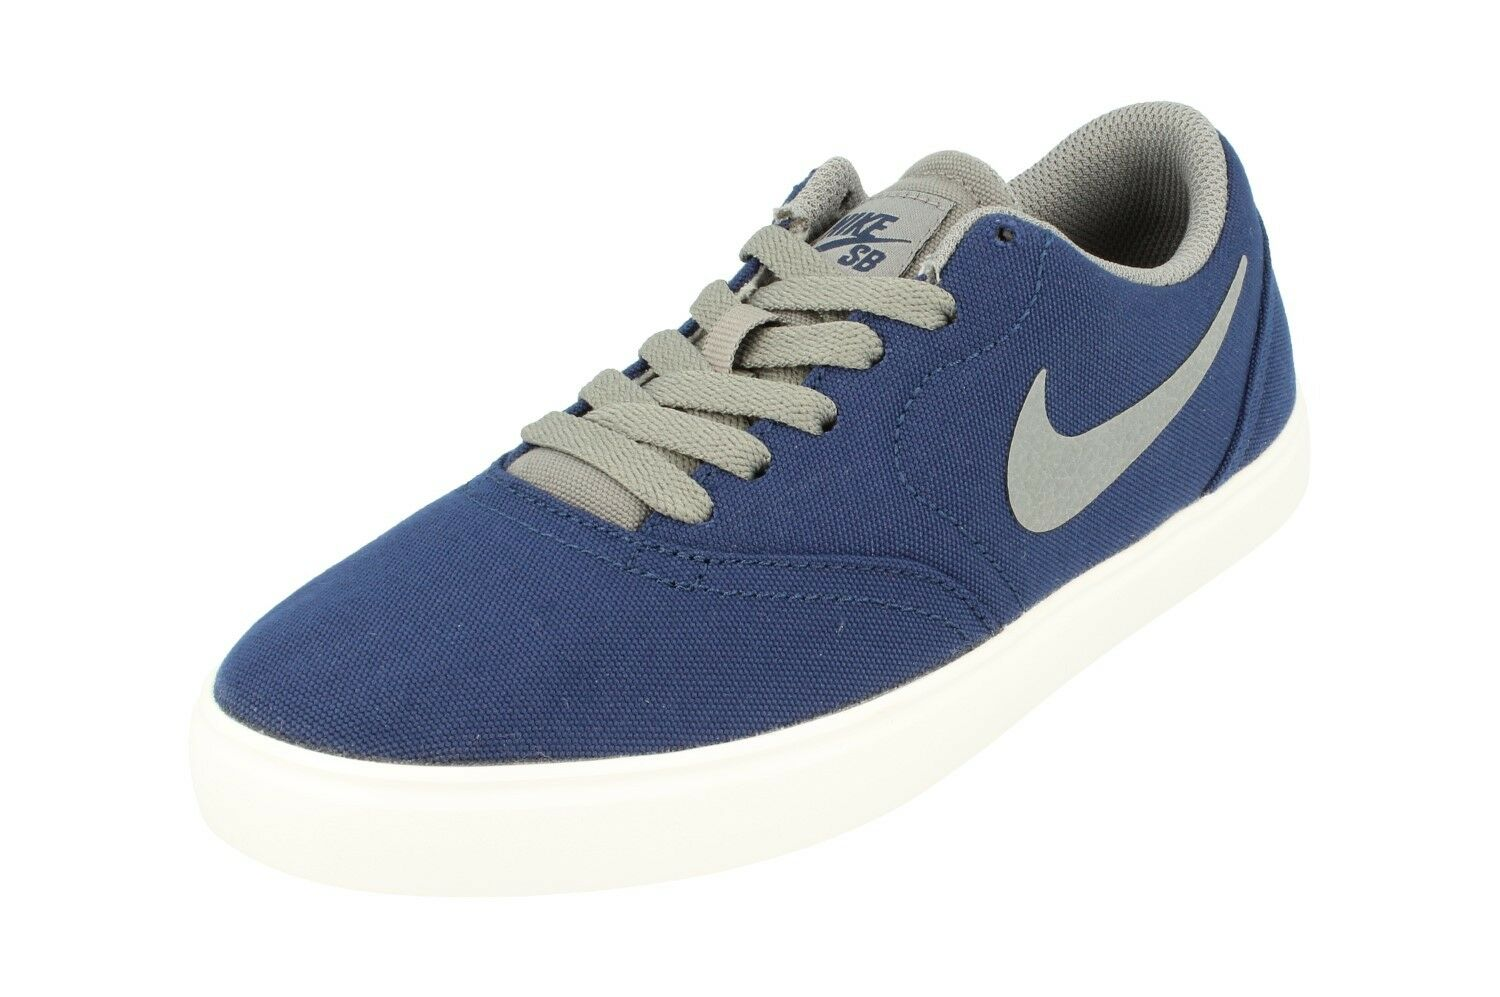 Nike Sb Carreaux Toile Gs Baskets 905373 Baskets 400 The most popular shoes for men and women